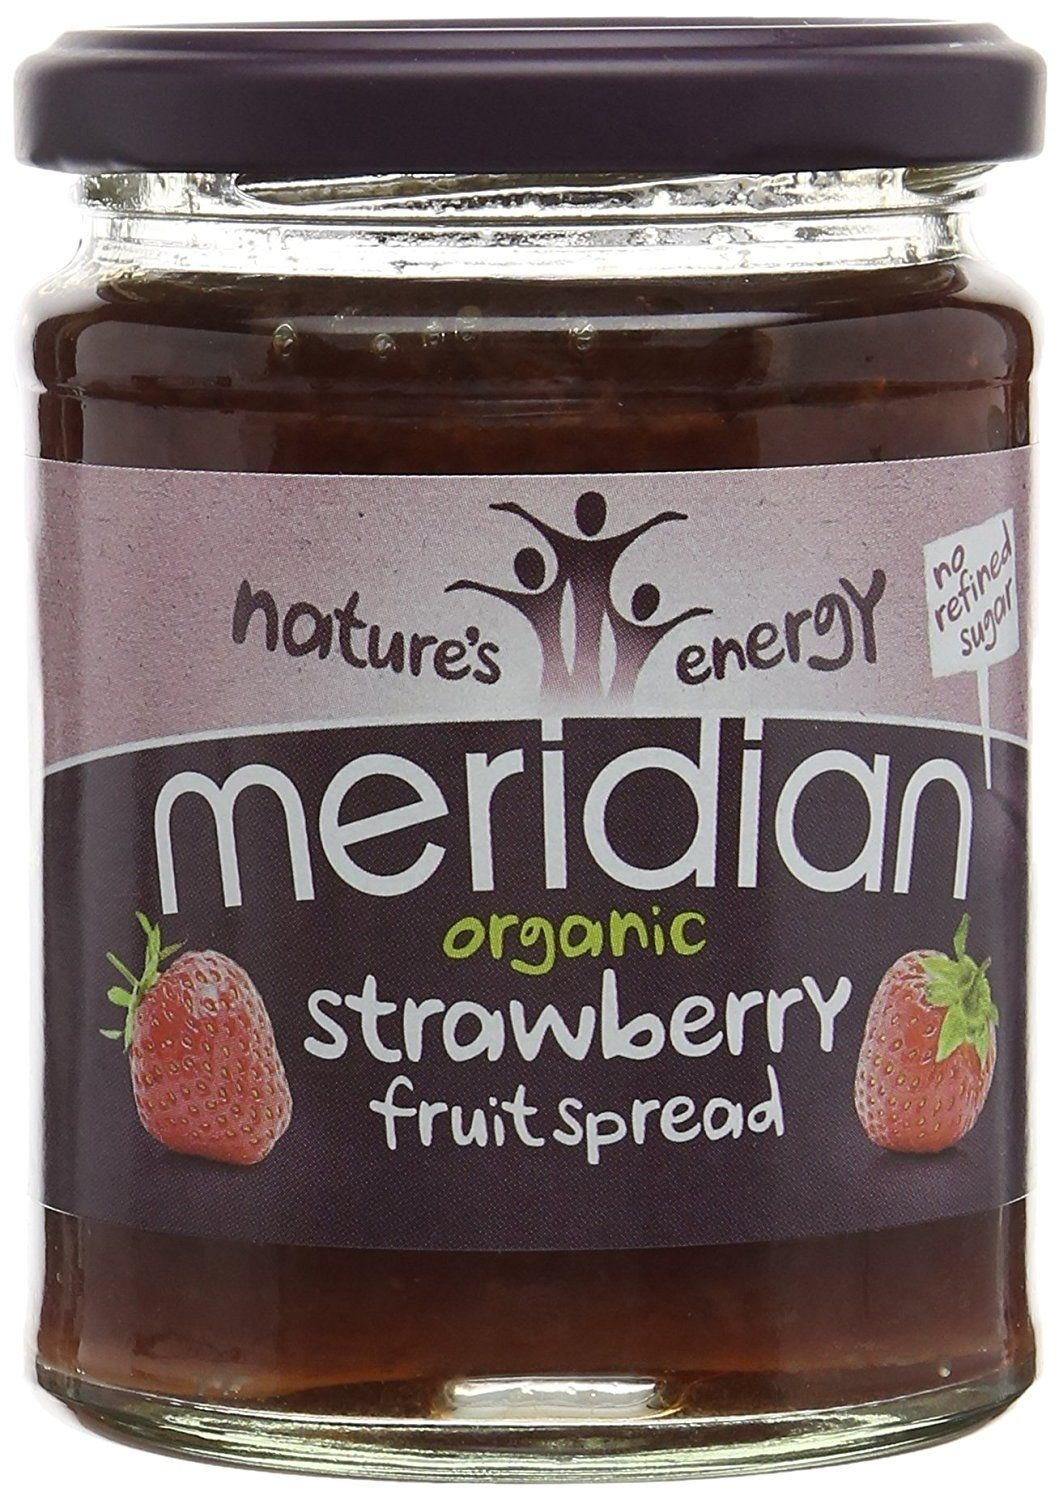 Meridian Organic Strawberry Fruit Spread 284g (Pack of 2)